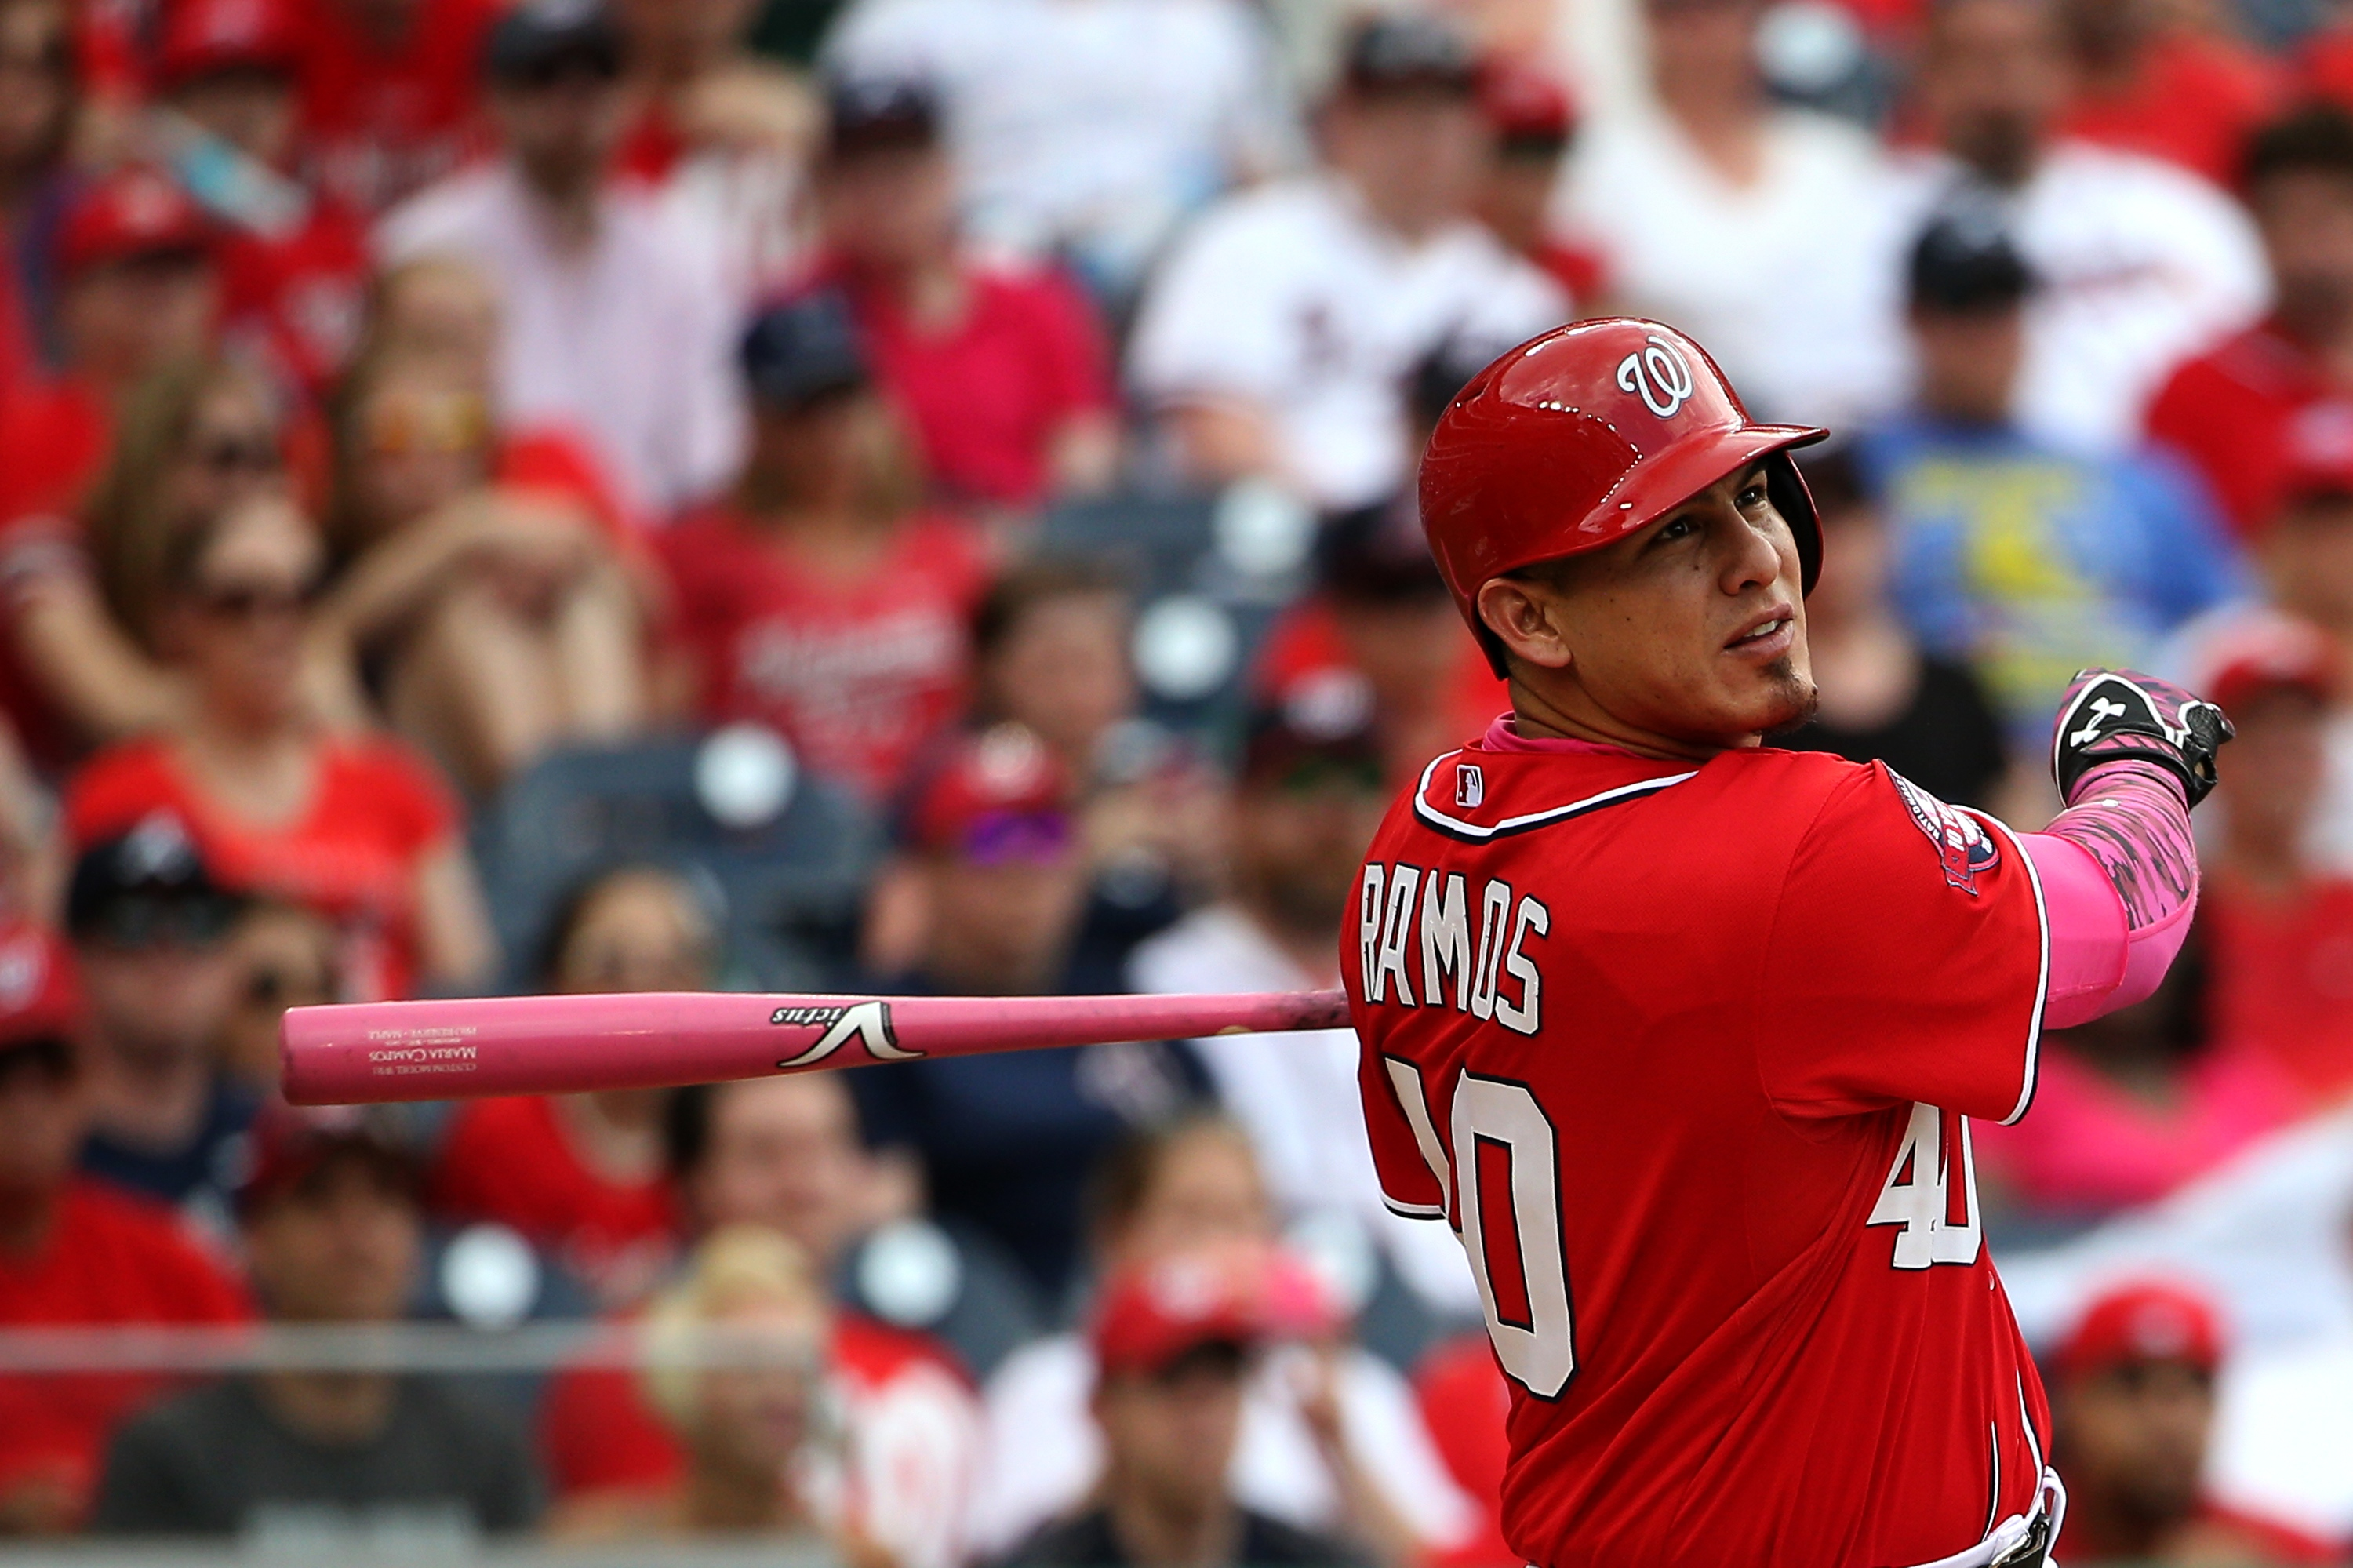 Wilson Ramos still hasn't stopped hitting. (Photo by Patrick Smith/Getty Images)